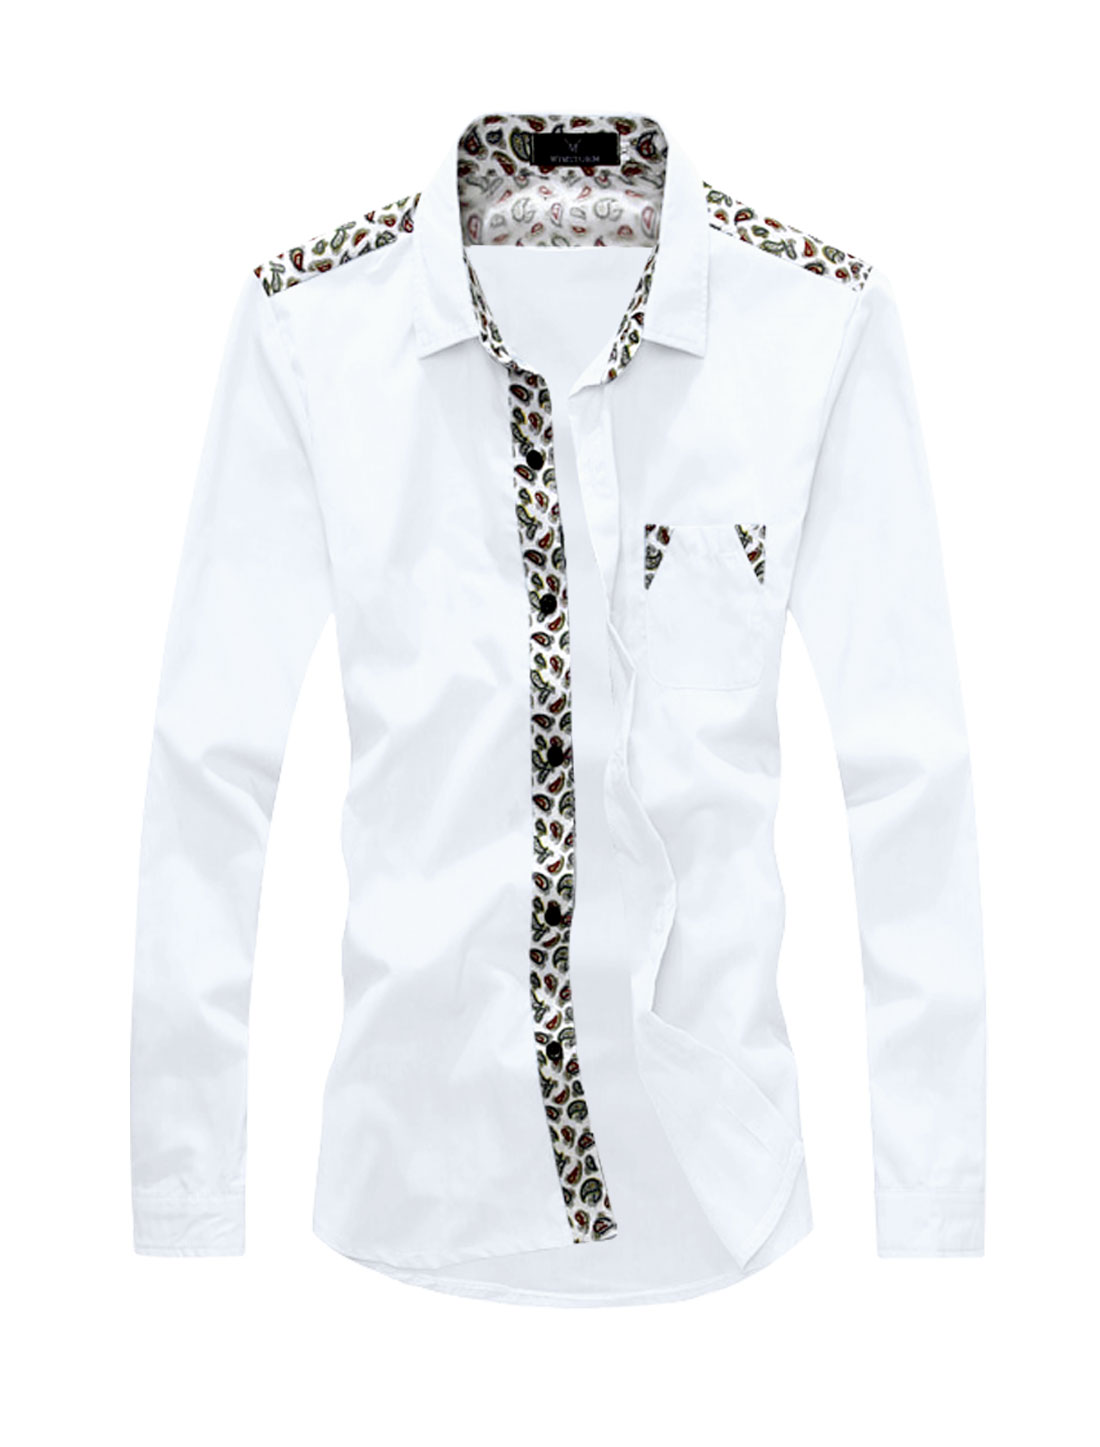 Men Long Sleeves Paisleys Chest Pocket Casual Shirts White S